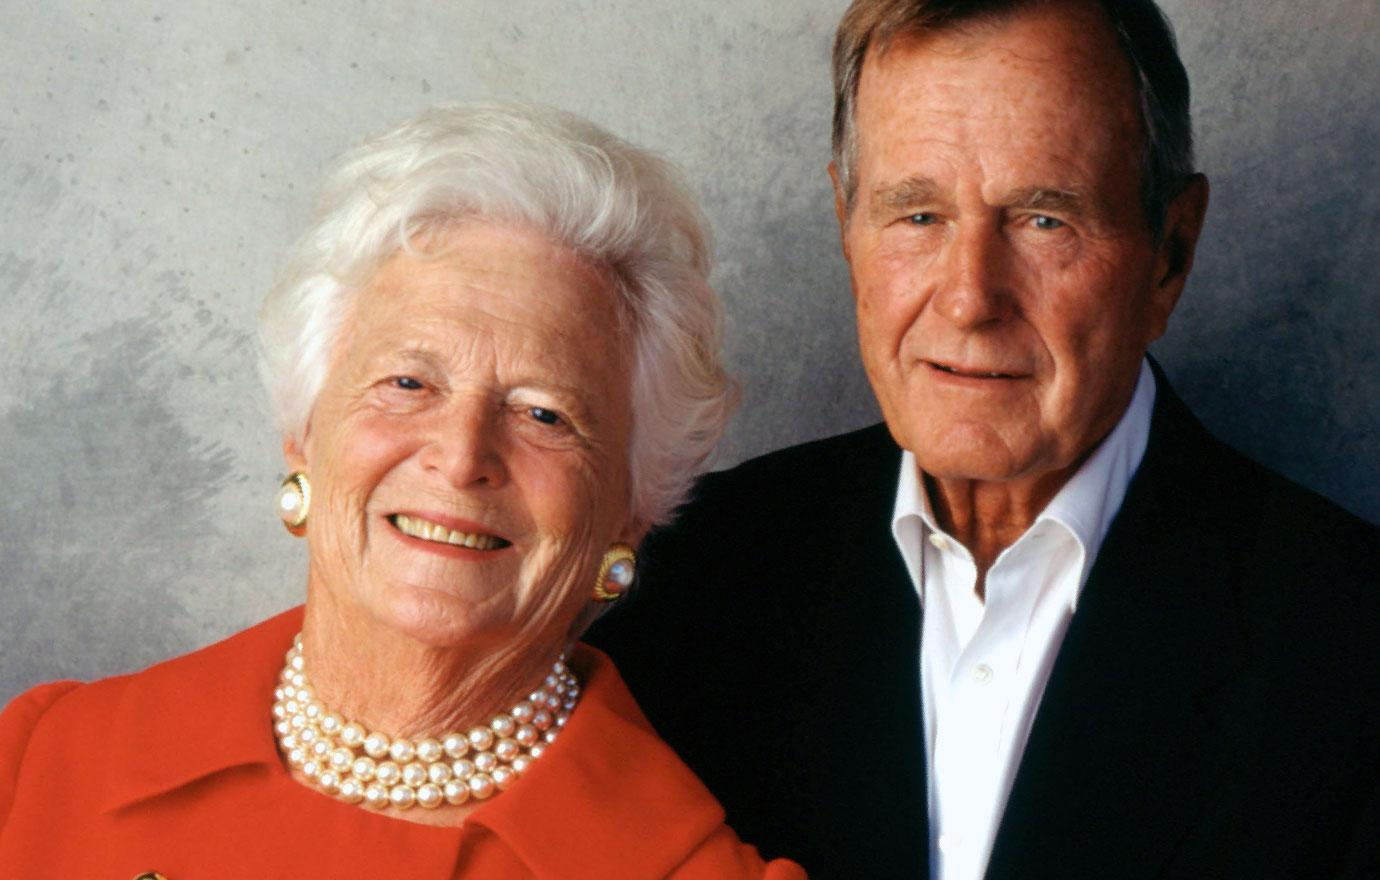 George H.W. Bush Dies Just Months After Wife Barbara